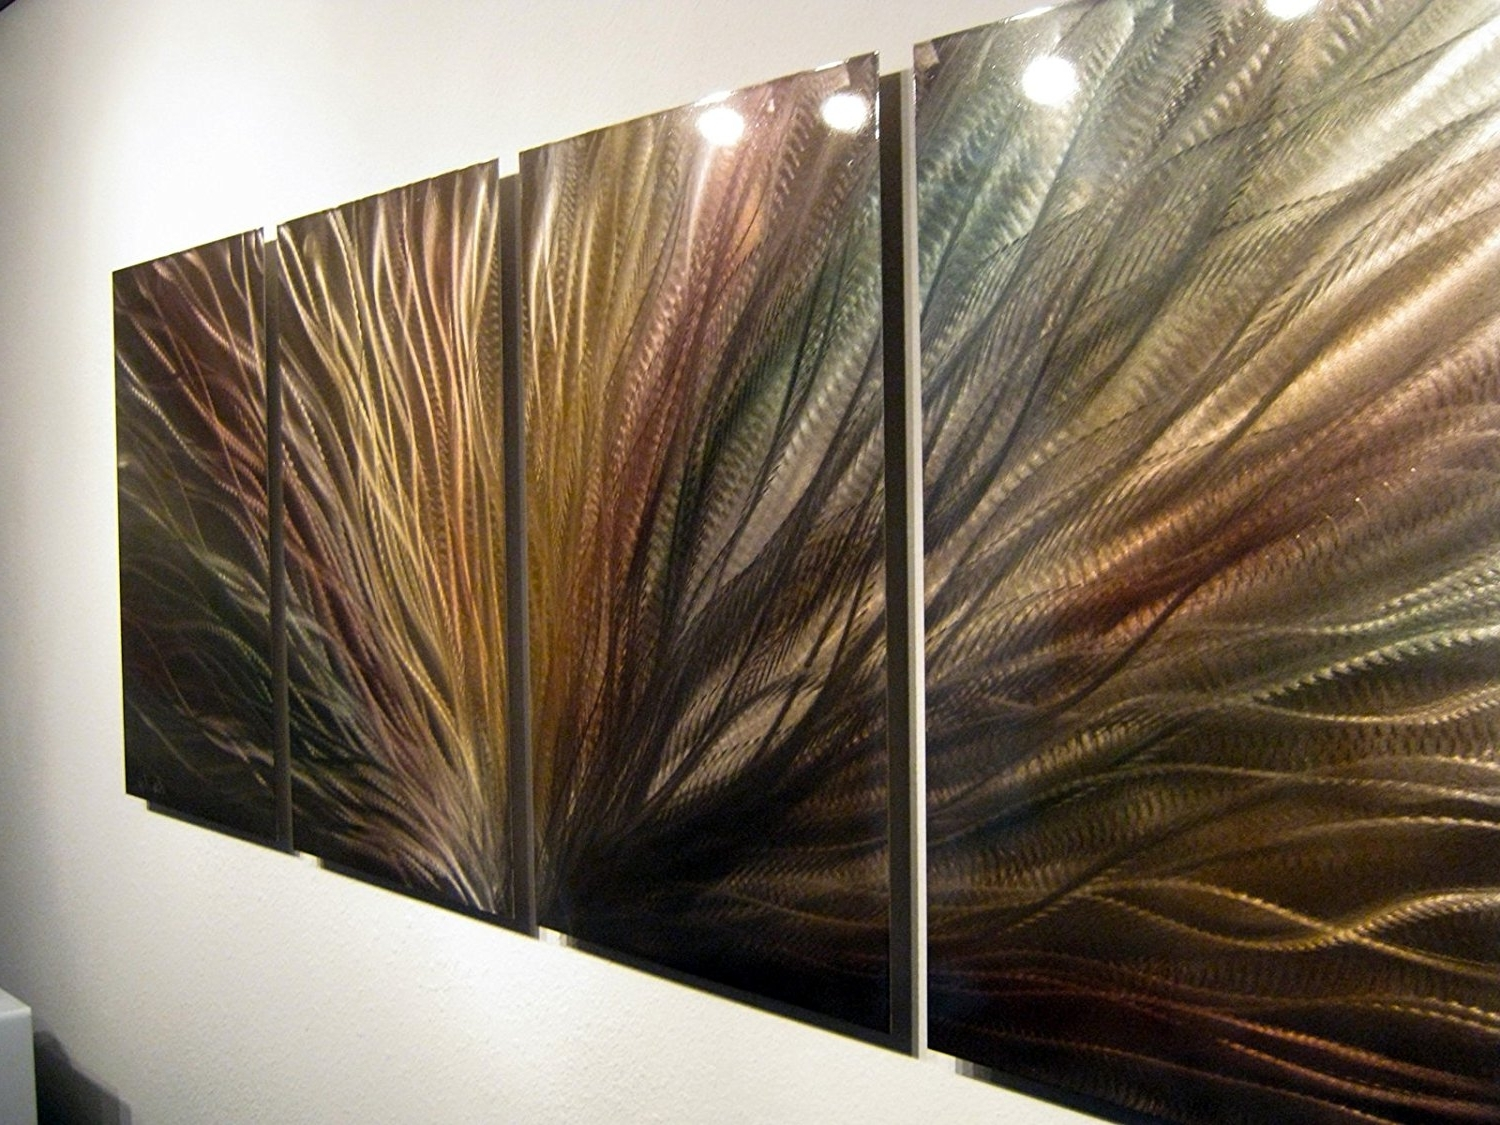 Most Recent Metal Wall Art In Amazon: Metal Wall Art, Modern Home Decor, Abstract Wall (View 9 of 15)